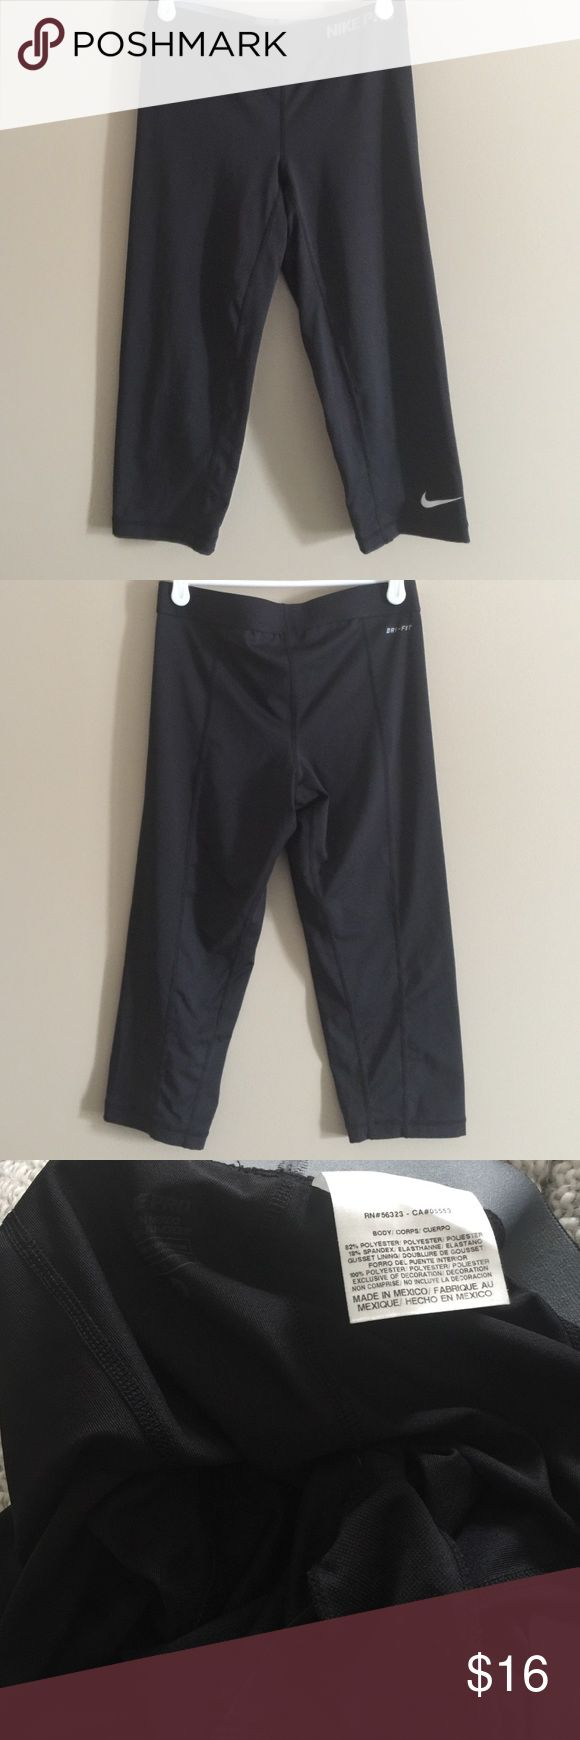 """Nike Compression Capris Great condition! Worn once, I just didn't like the style enough on me. Seams are in perfect condition. Hit just below knee for me and I'm 5'8"""". Nike Pants Leggings"""